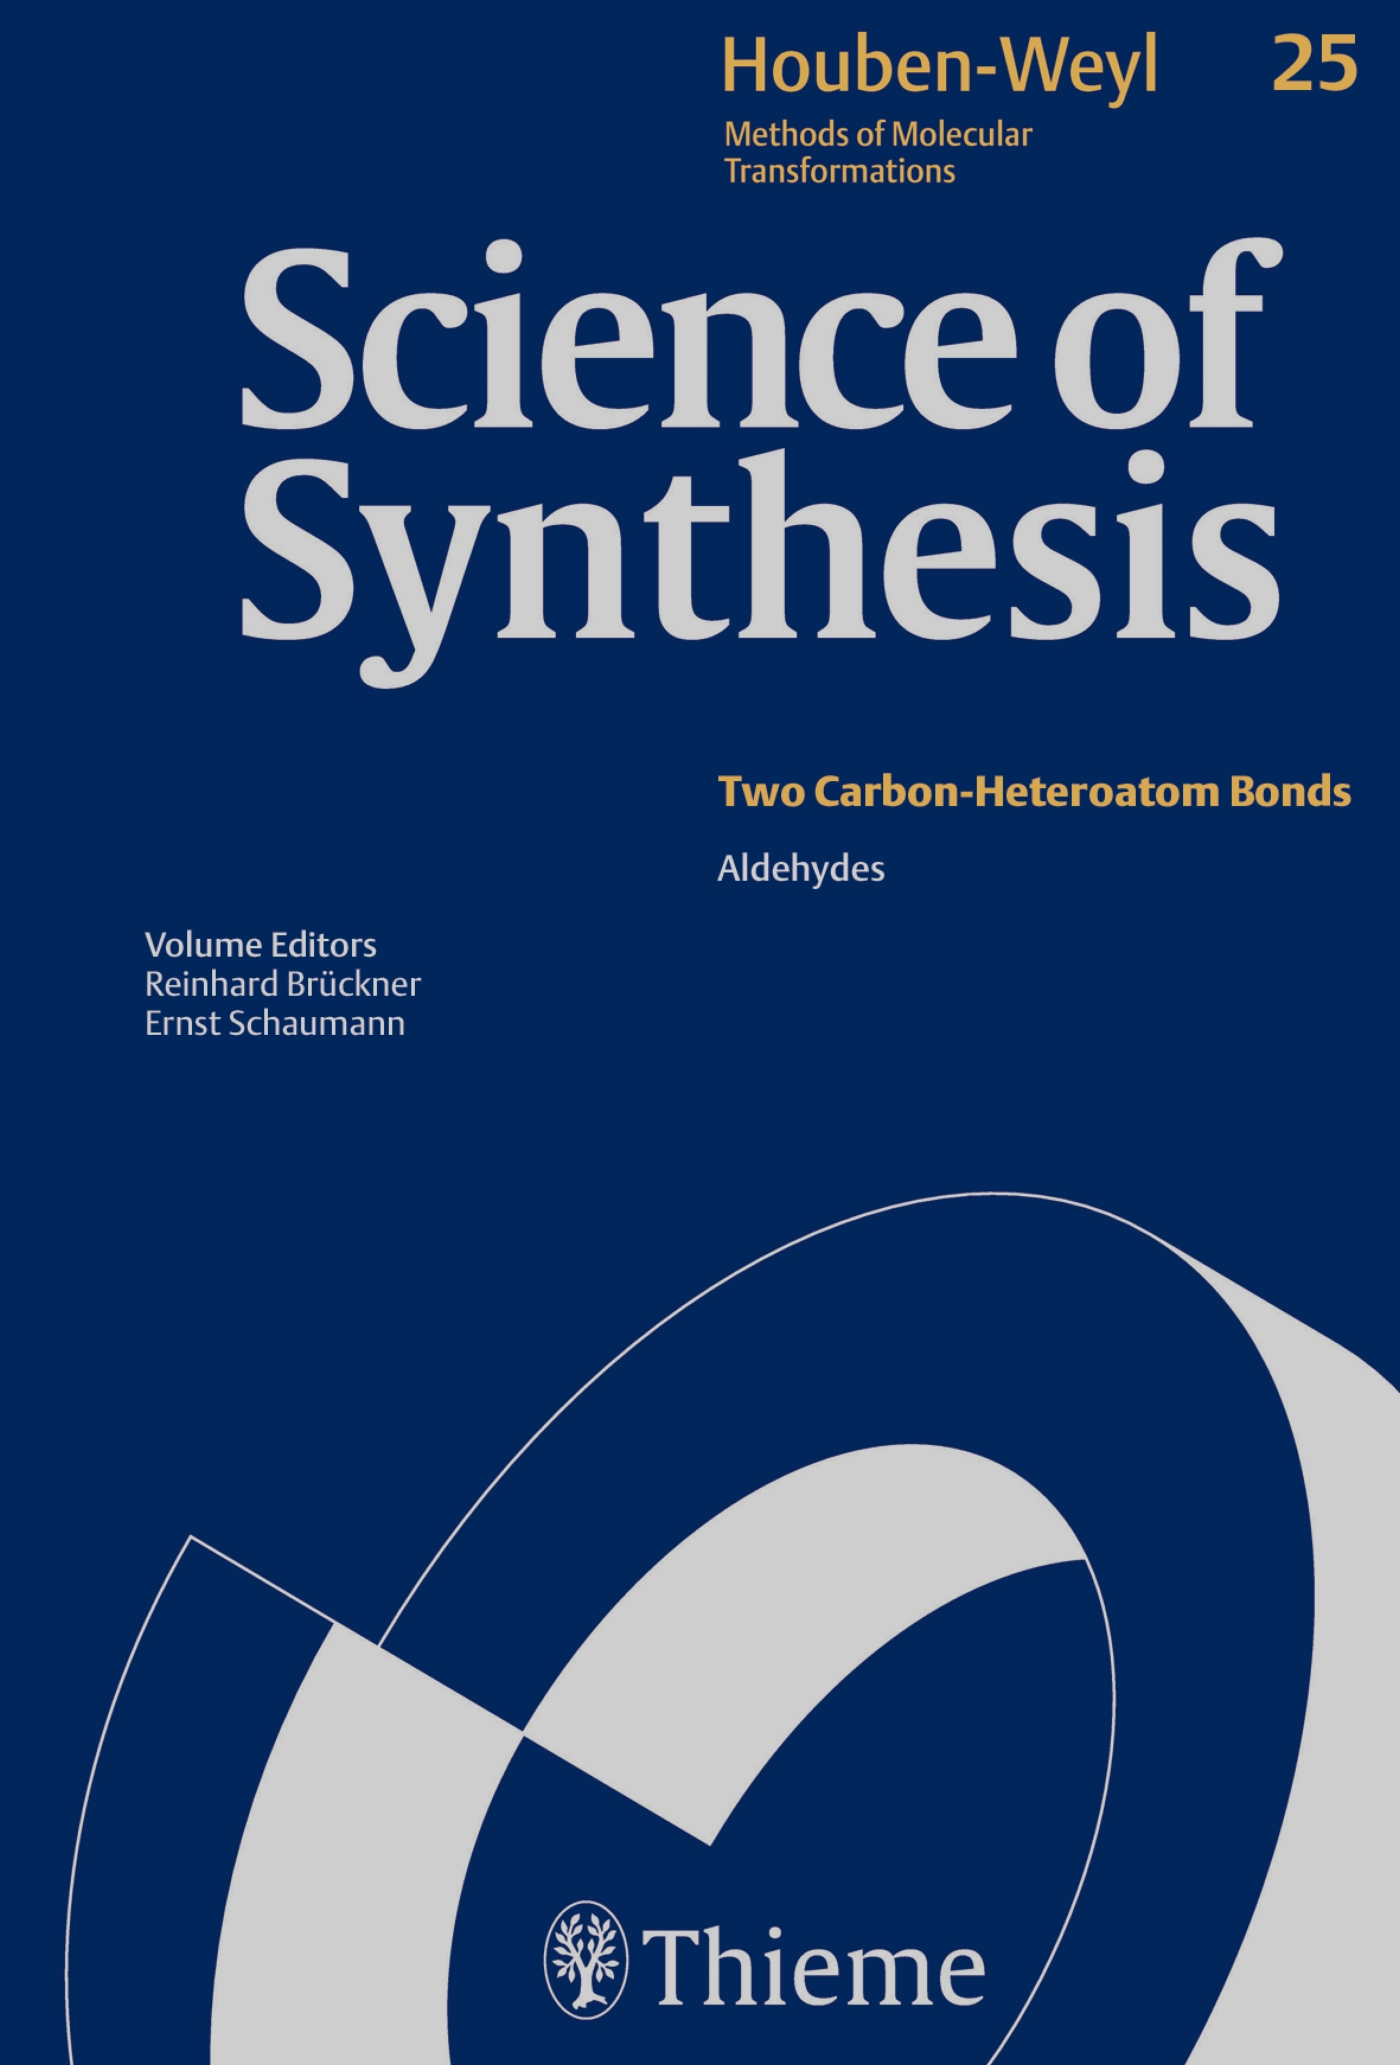 Science of Synthesis: Houben-Weyl Methods of Molecular Transformations  Vol. 25